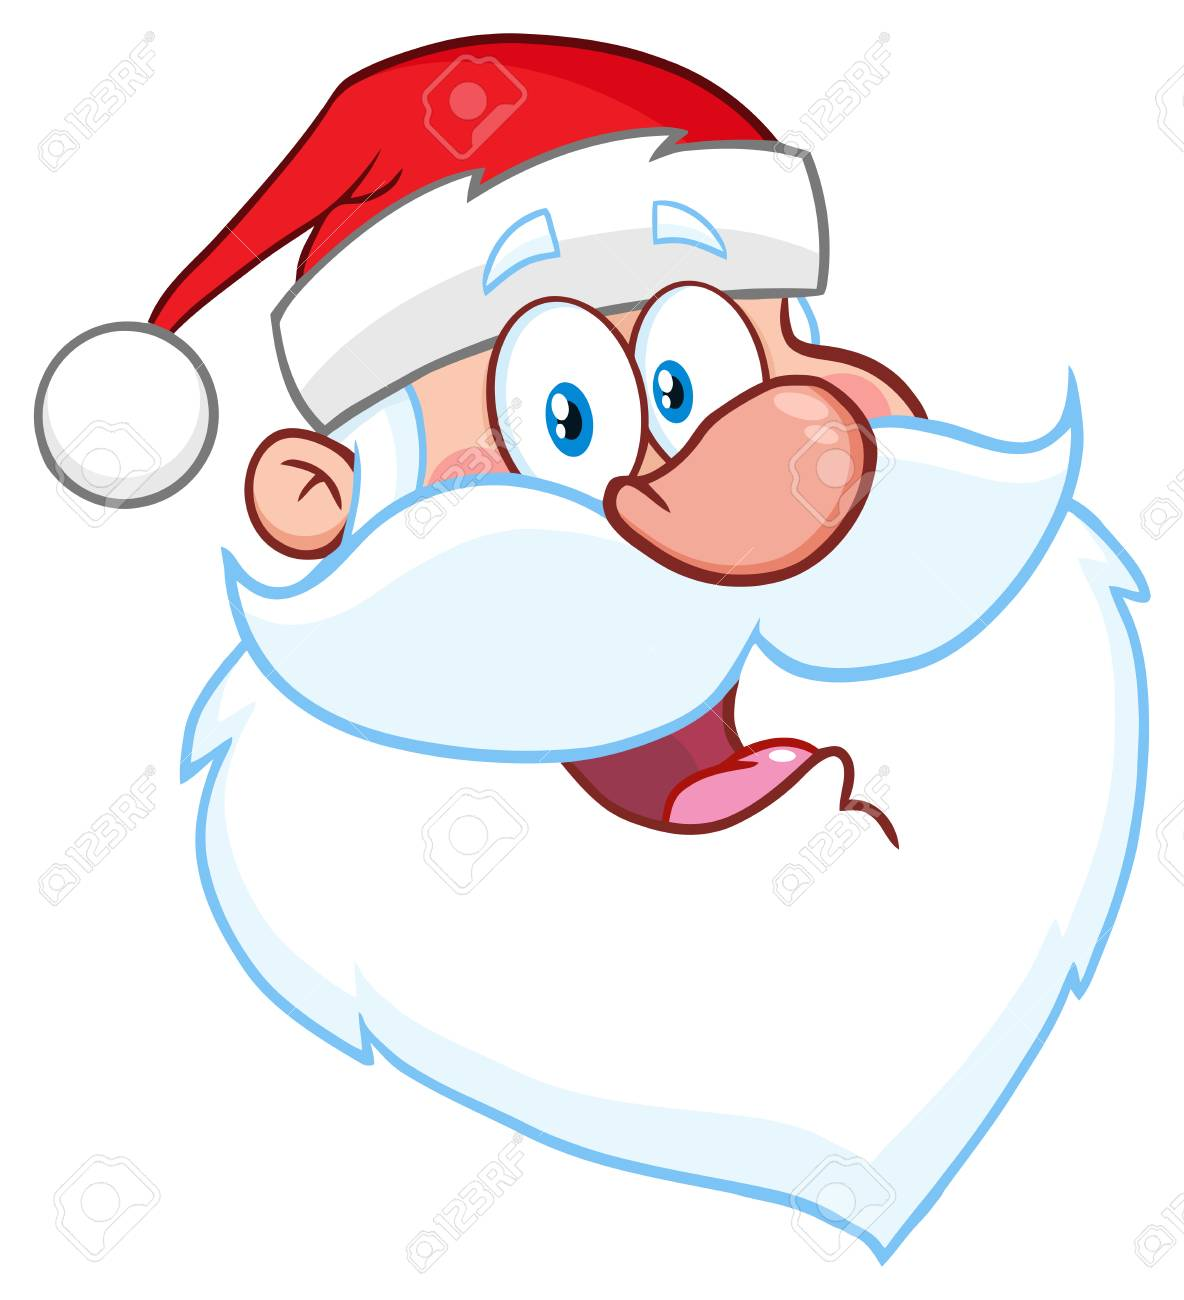 happy santa claus face classic cartoon mascot character hand stock photo picture and royalty free image image 92515719 happy santa claus face classic cartoon mascot character hand